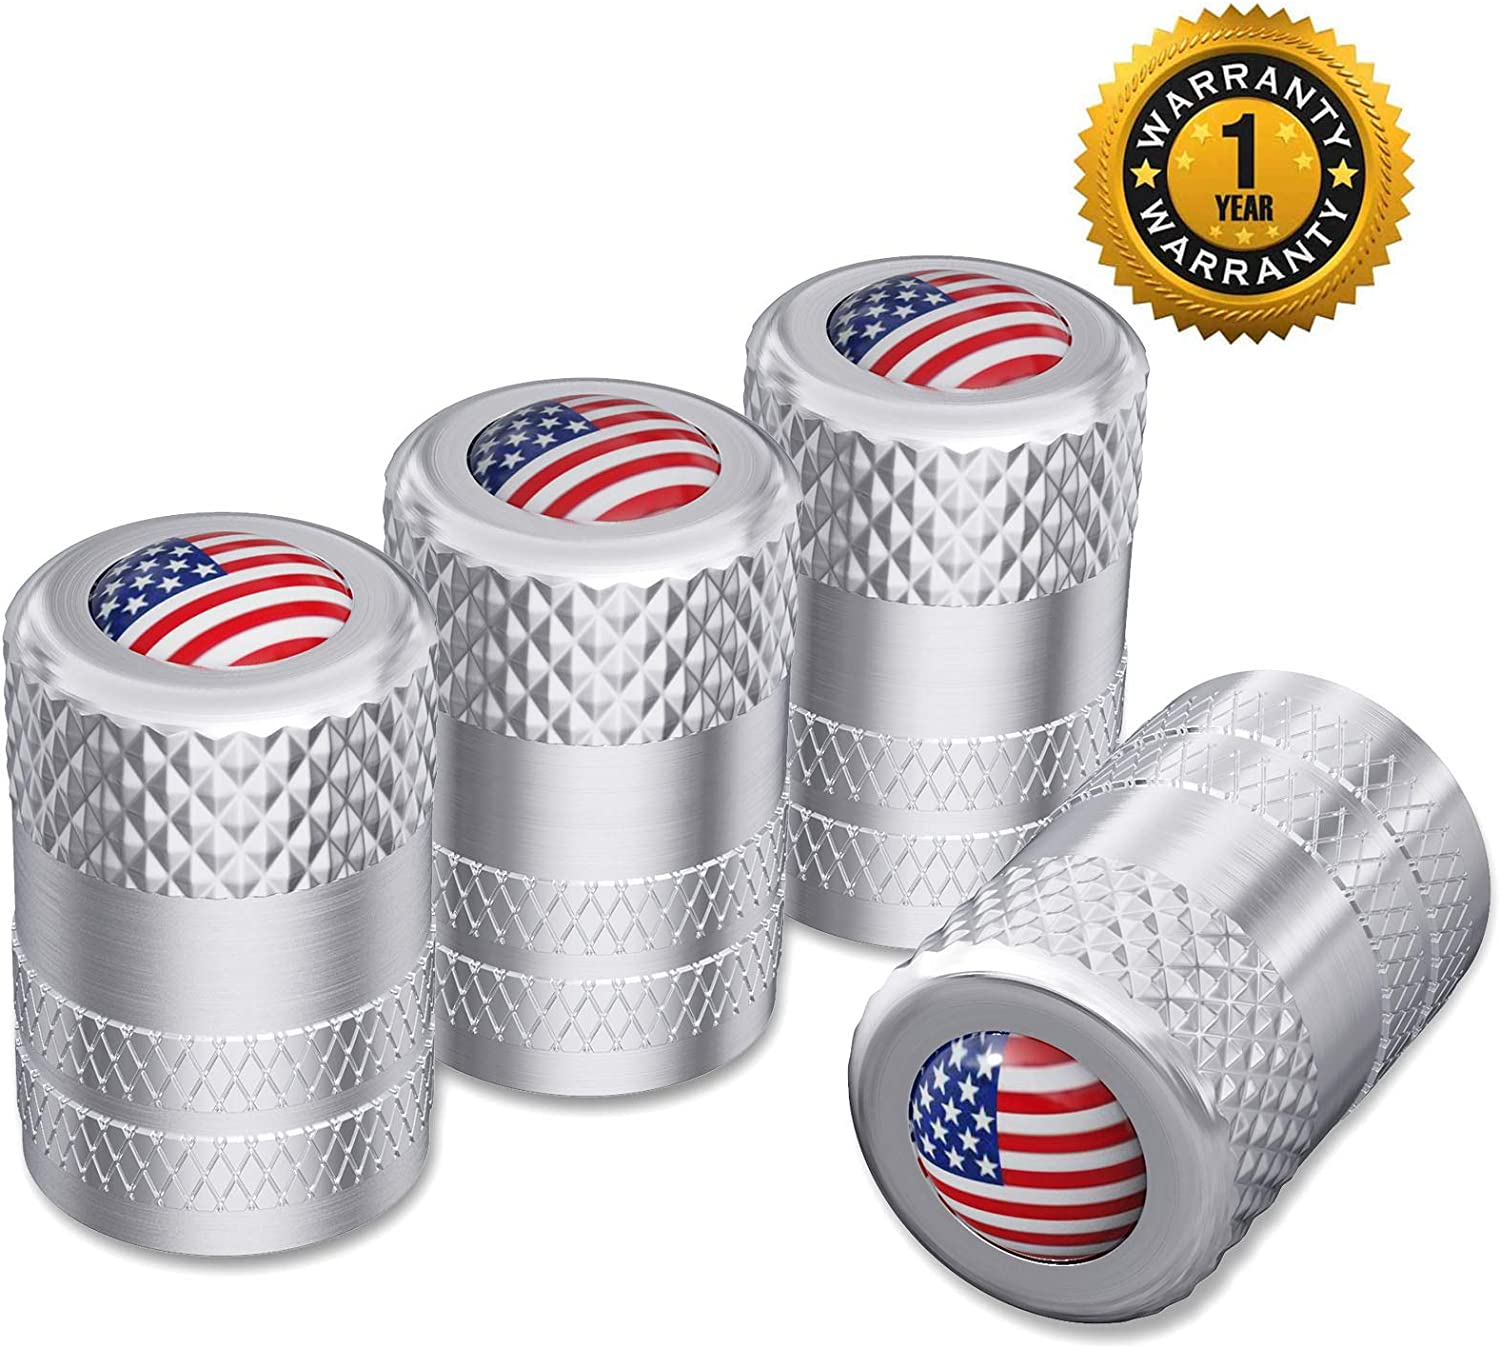 Tocatus Valve Stem Cap Emblem Copper with Rubber Ring Keychain Tire Wheel Rim Dust Cover American Flag Black 5 Pack